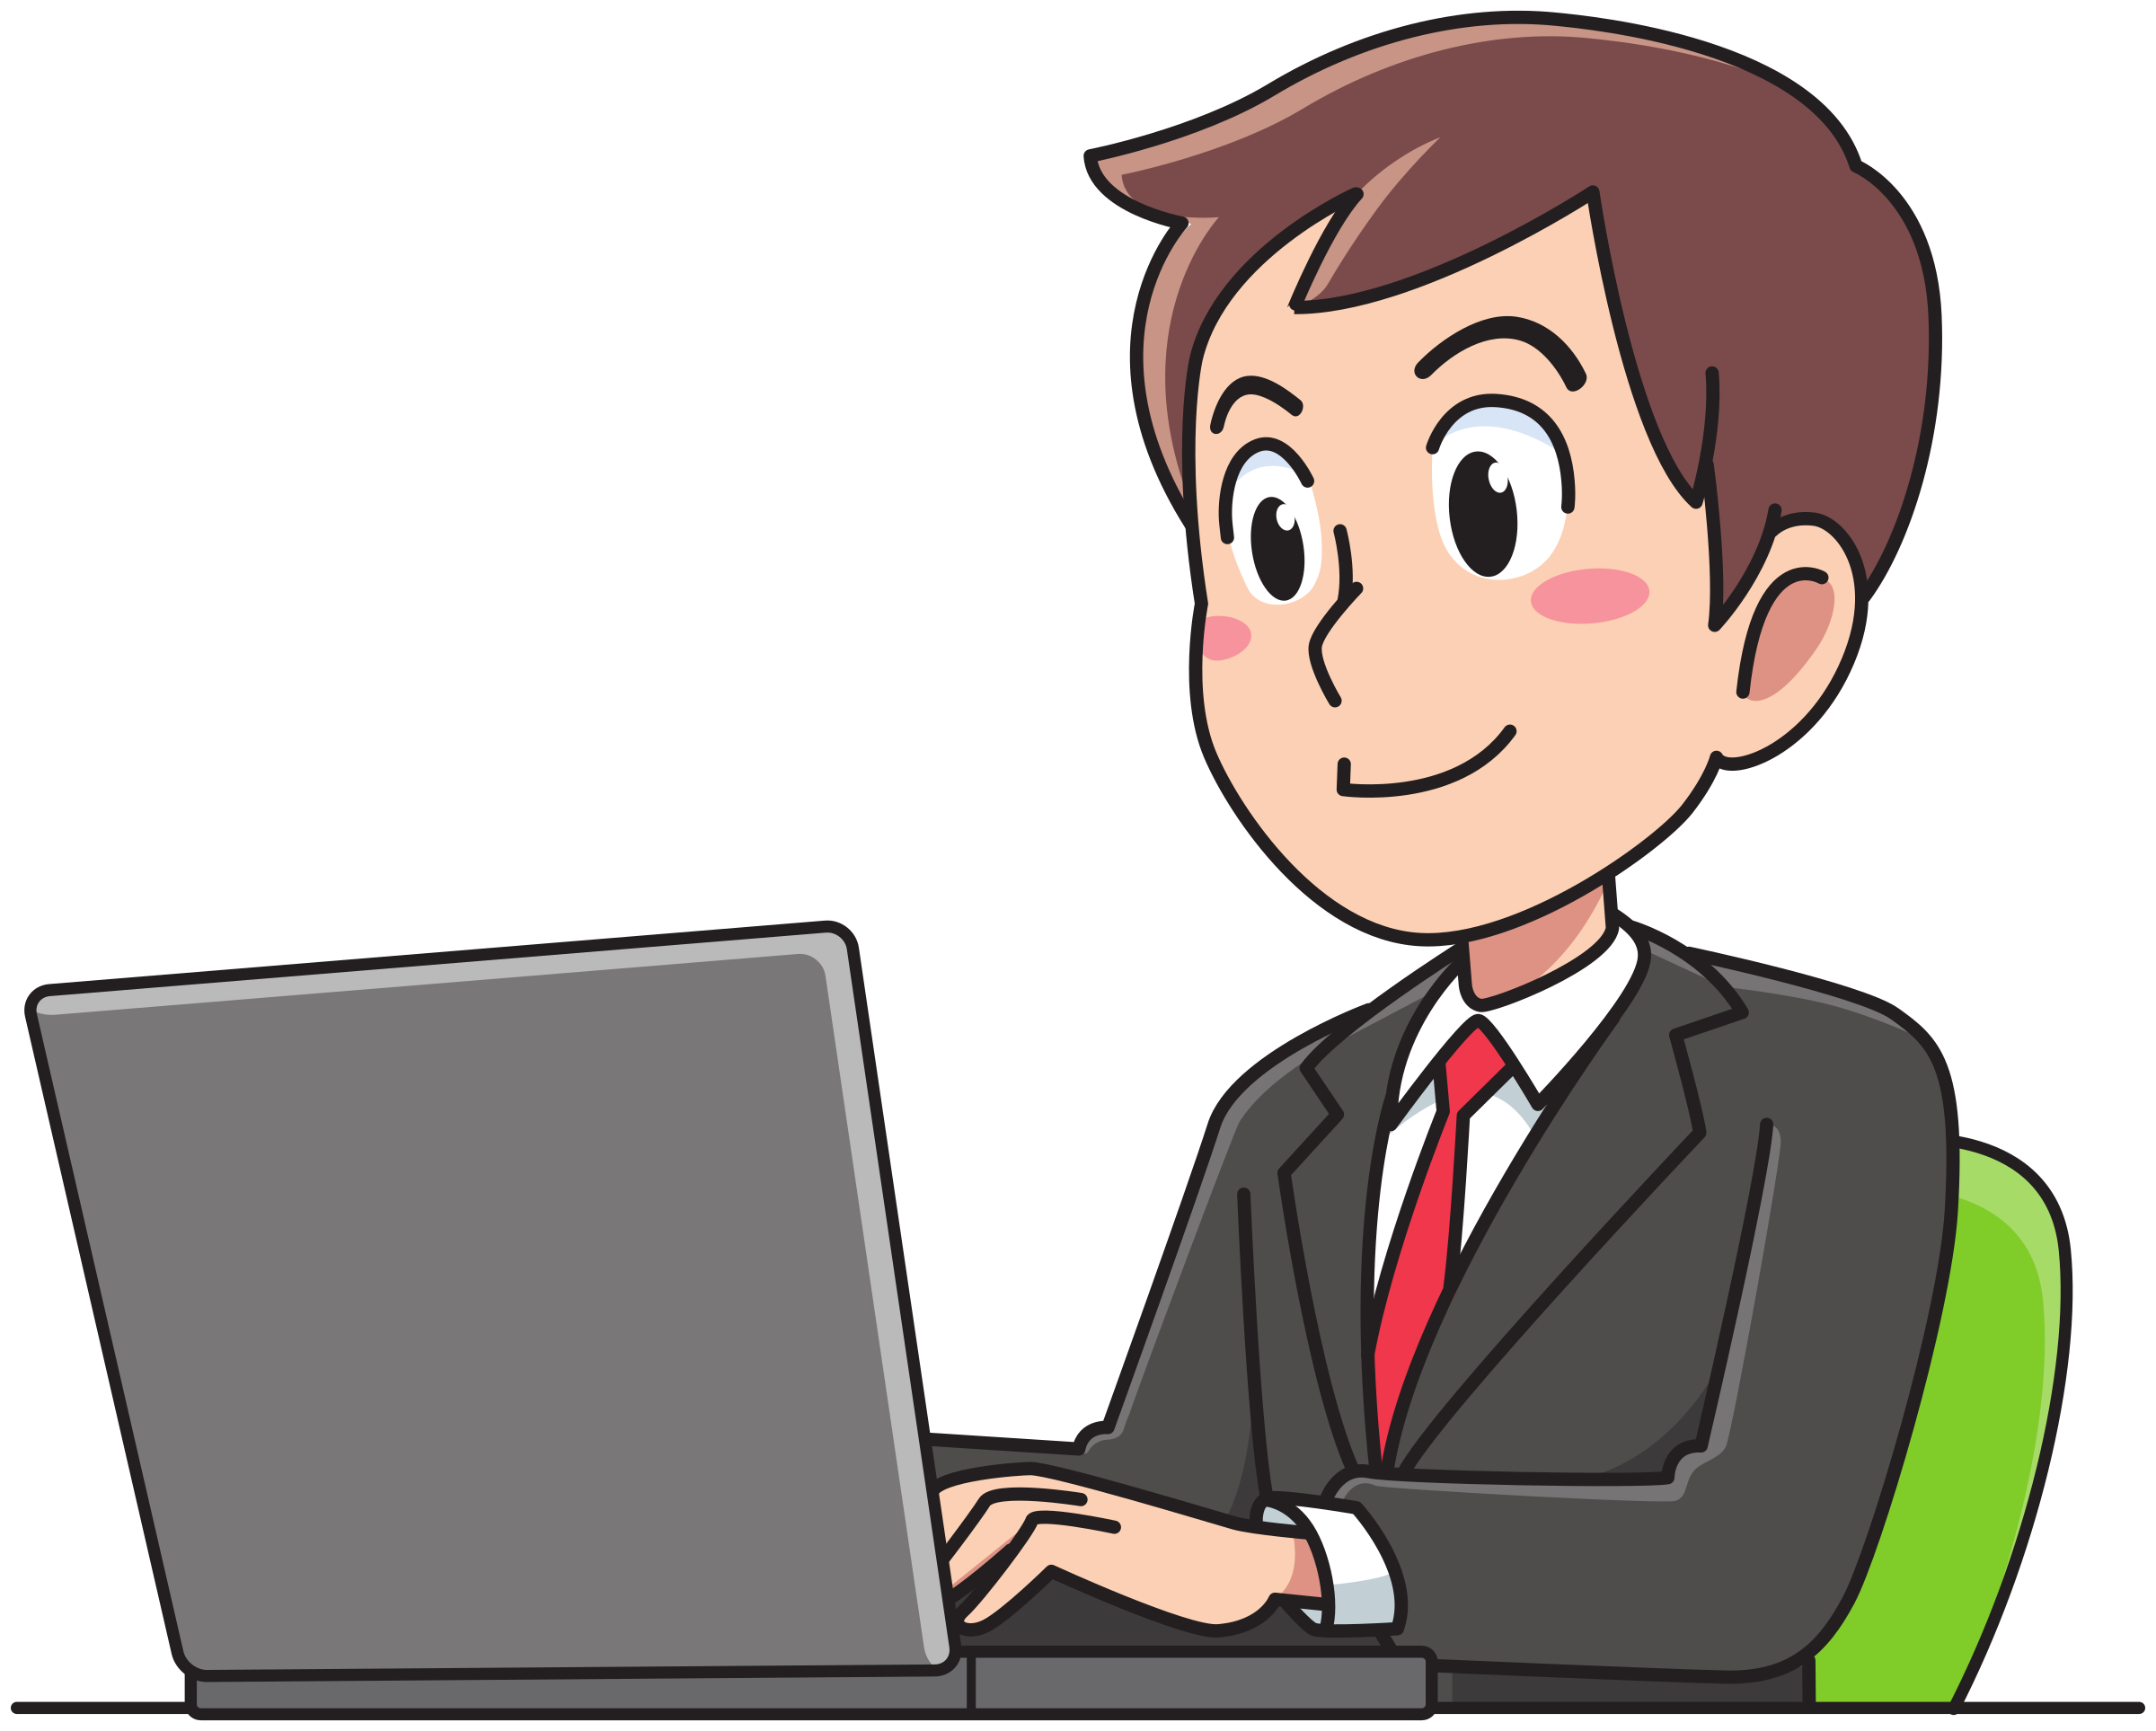 Man cartoon png. Business working icons free